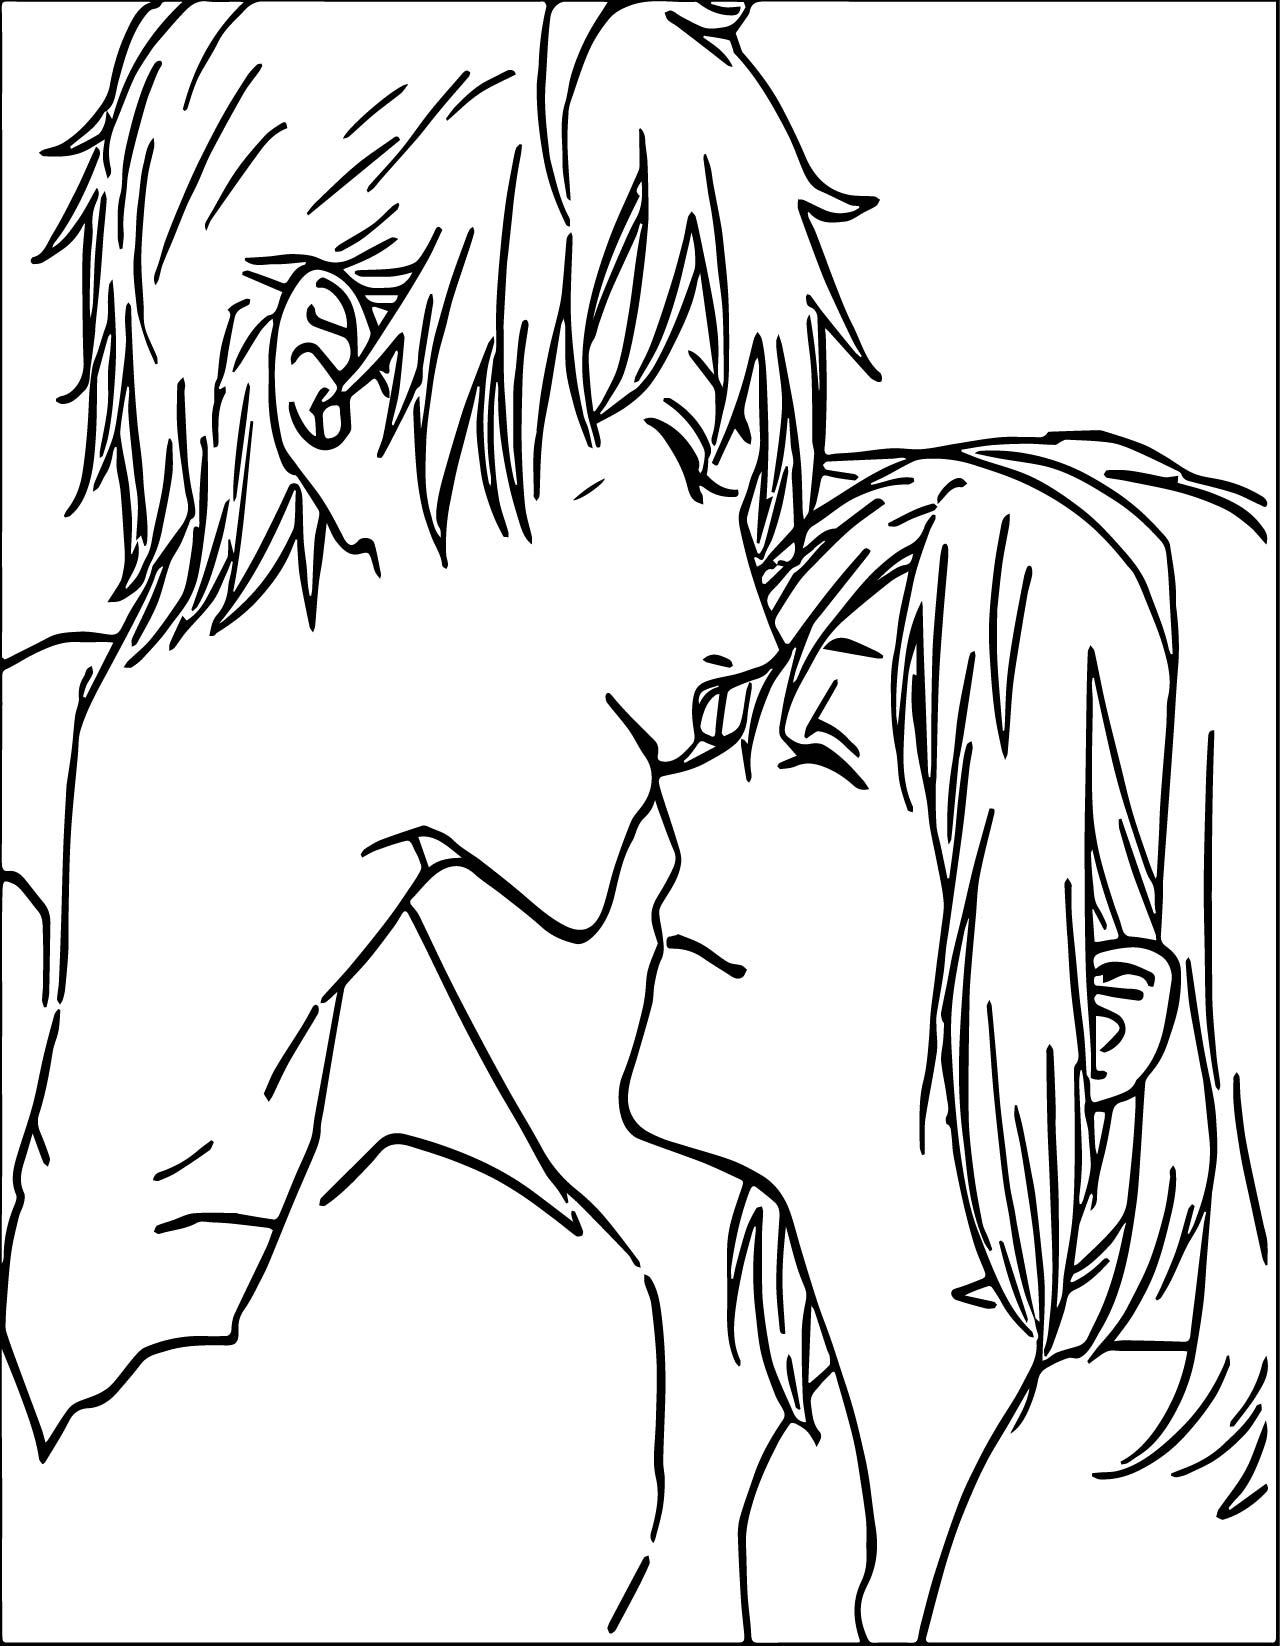 Anime Boy And Girl Couple Love Coloring Page | Wecoloringpage.com